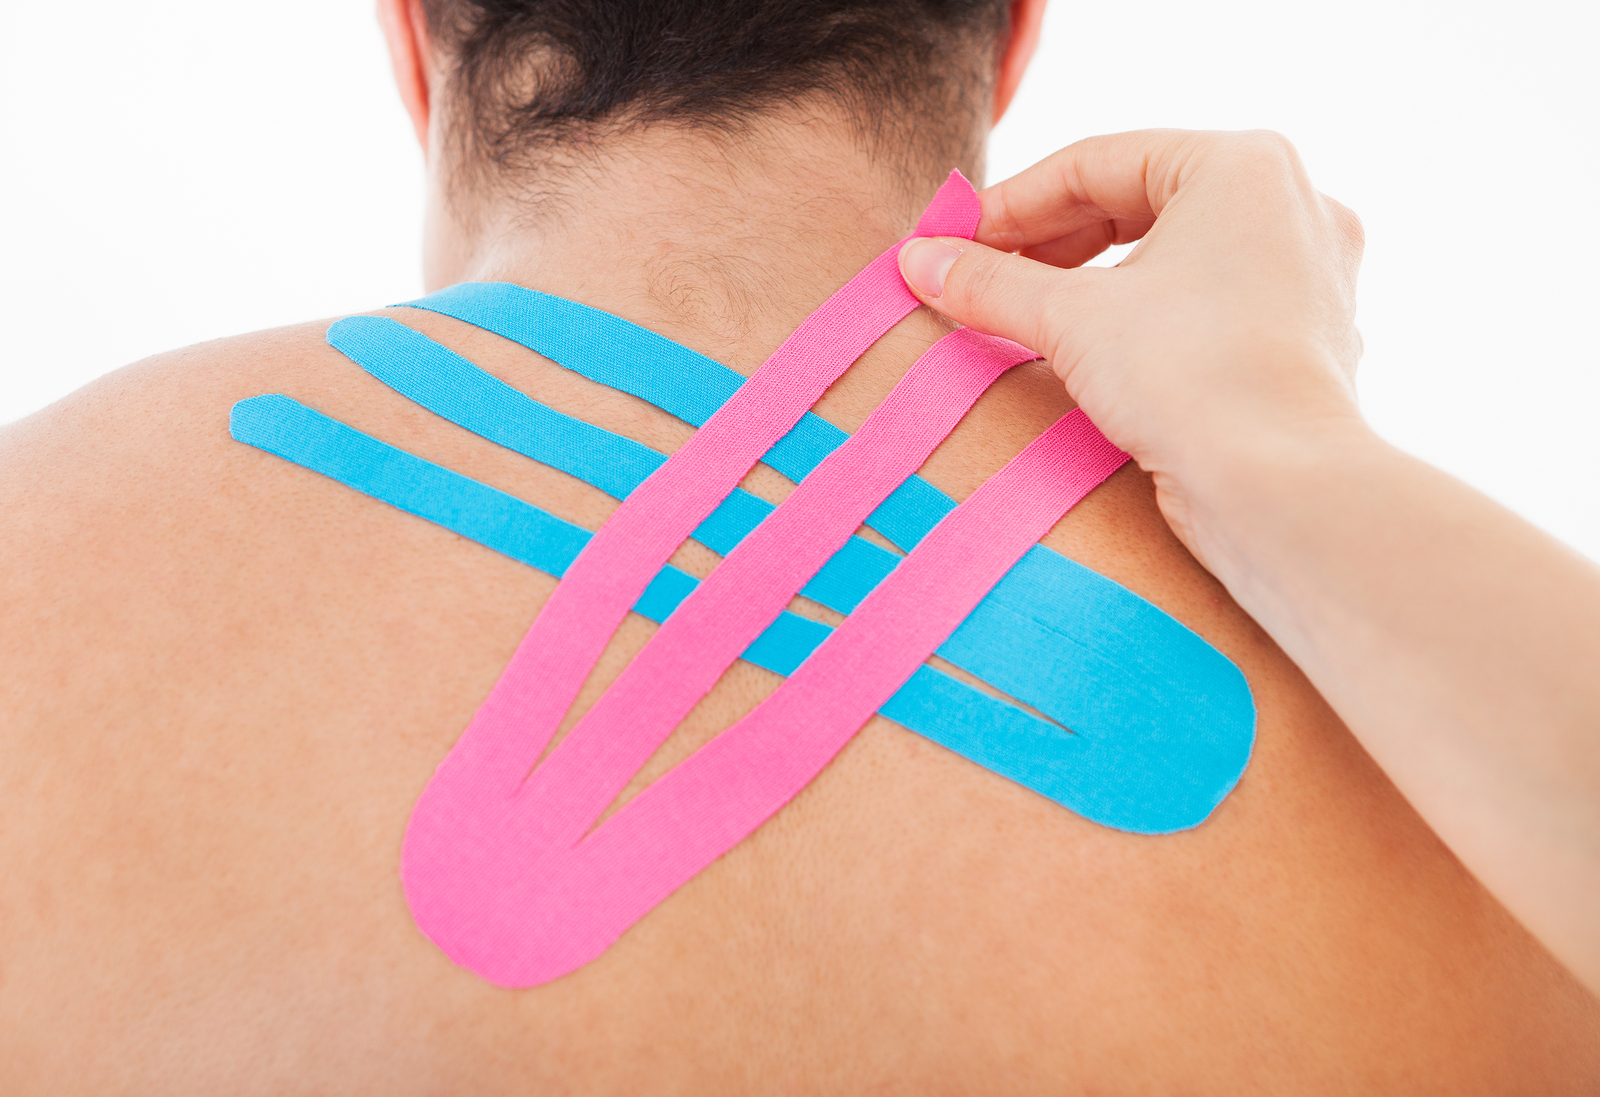 bigstock-Applying-Special-Physio-Tape-O-63623407.jpg